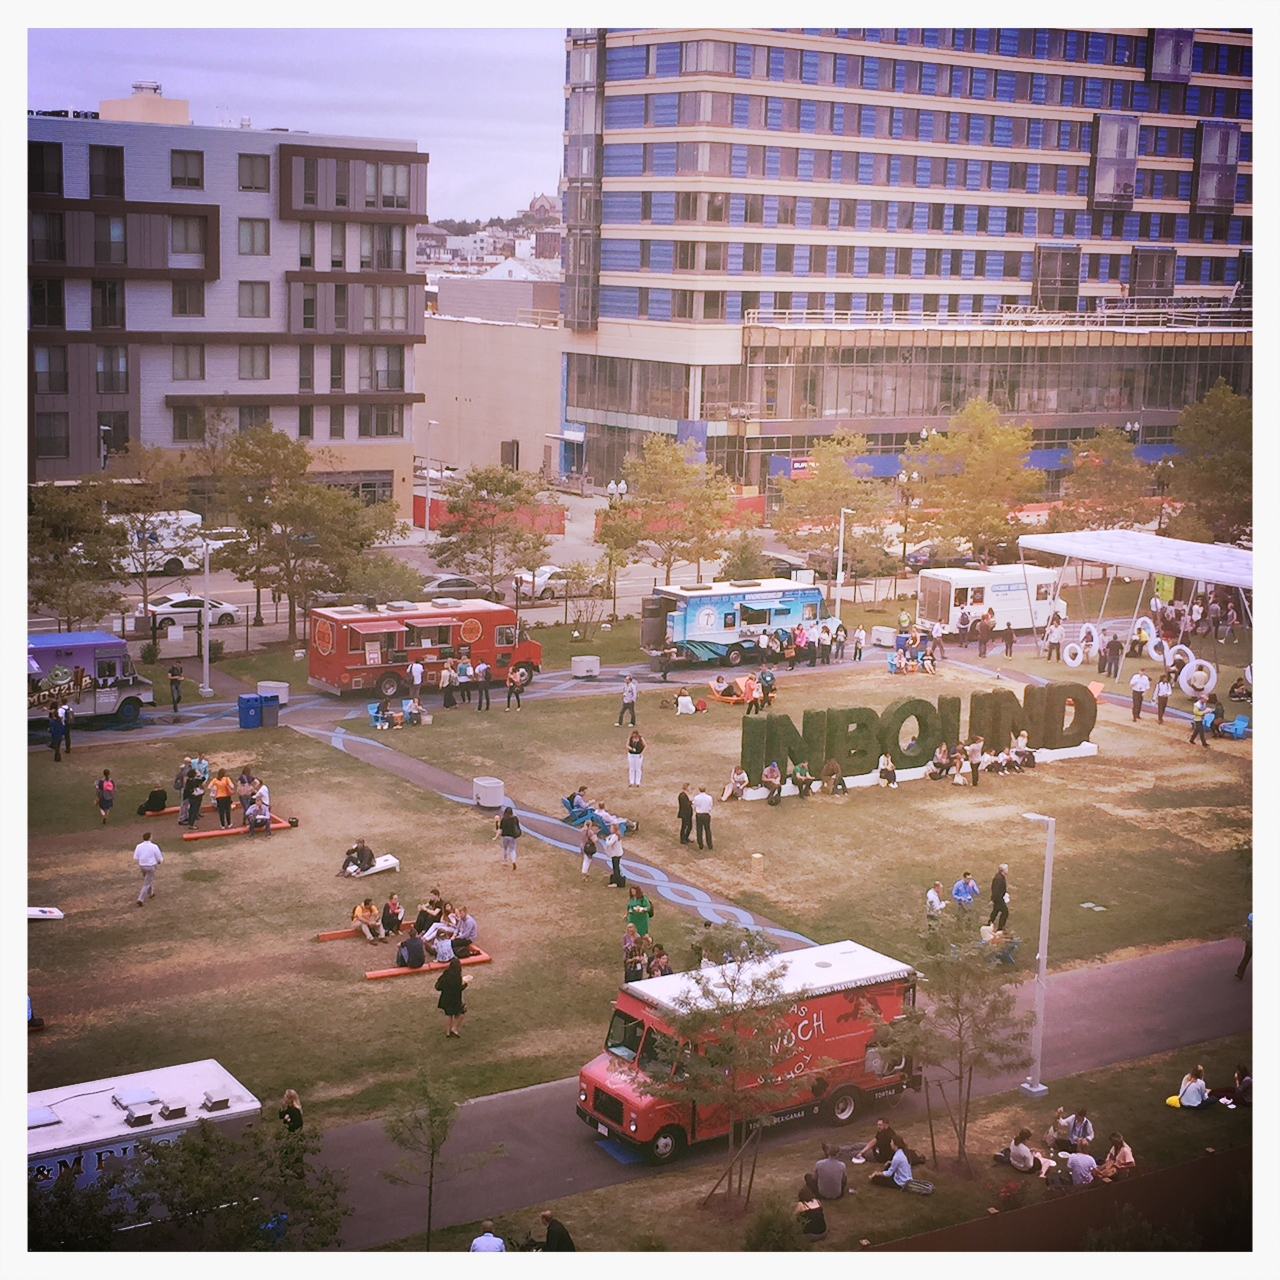 The park outside INBOUND 2015 (featuring those lovely food trucks).